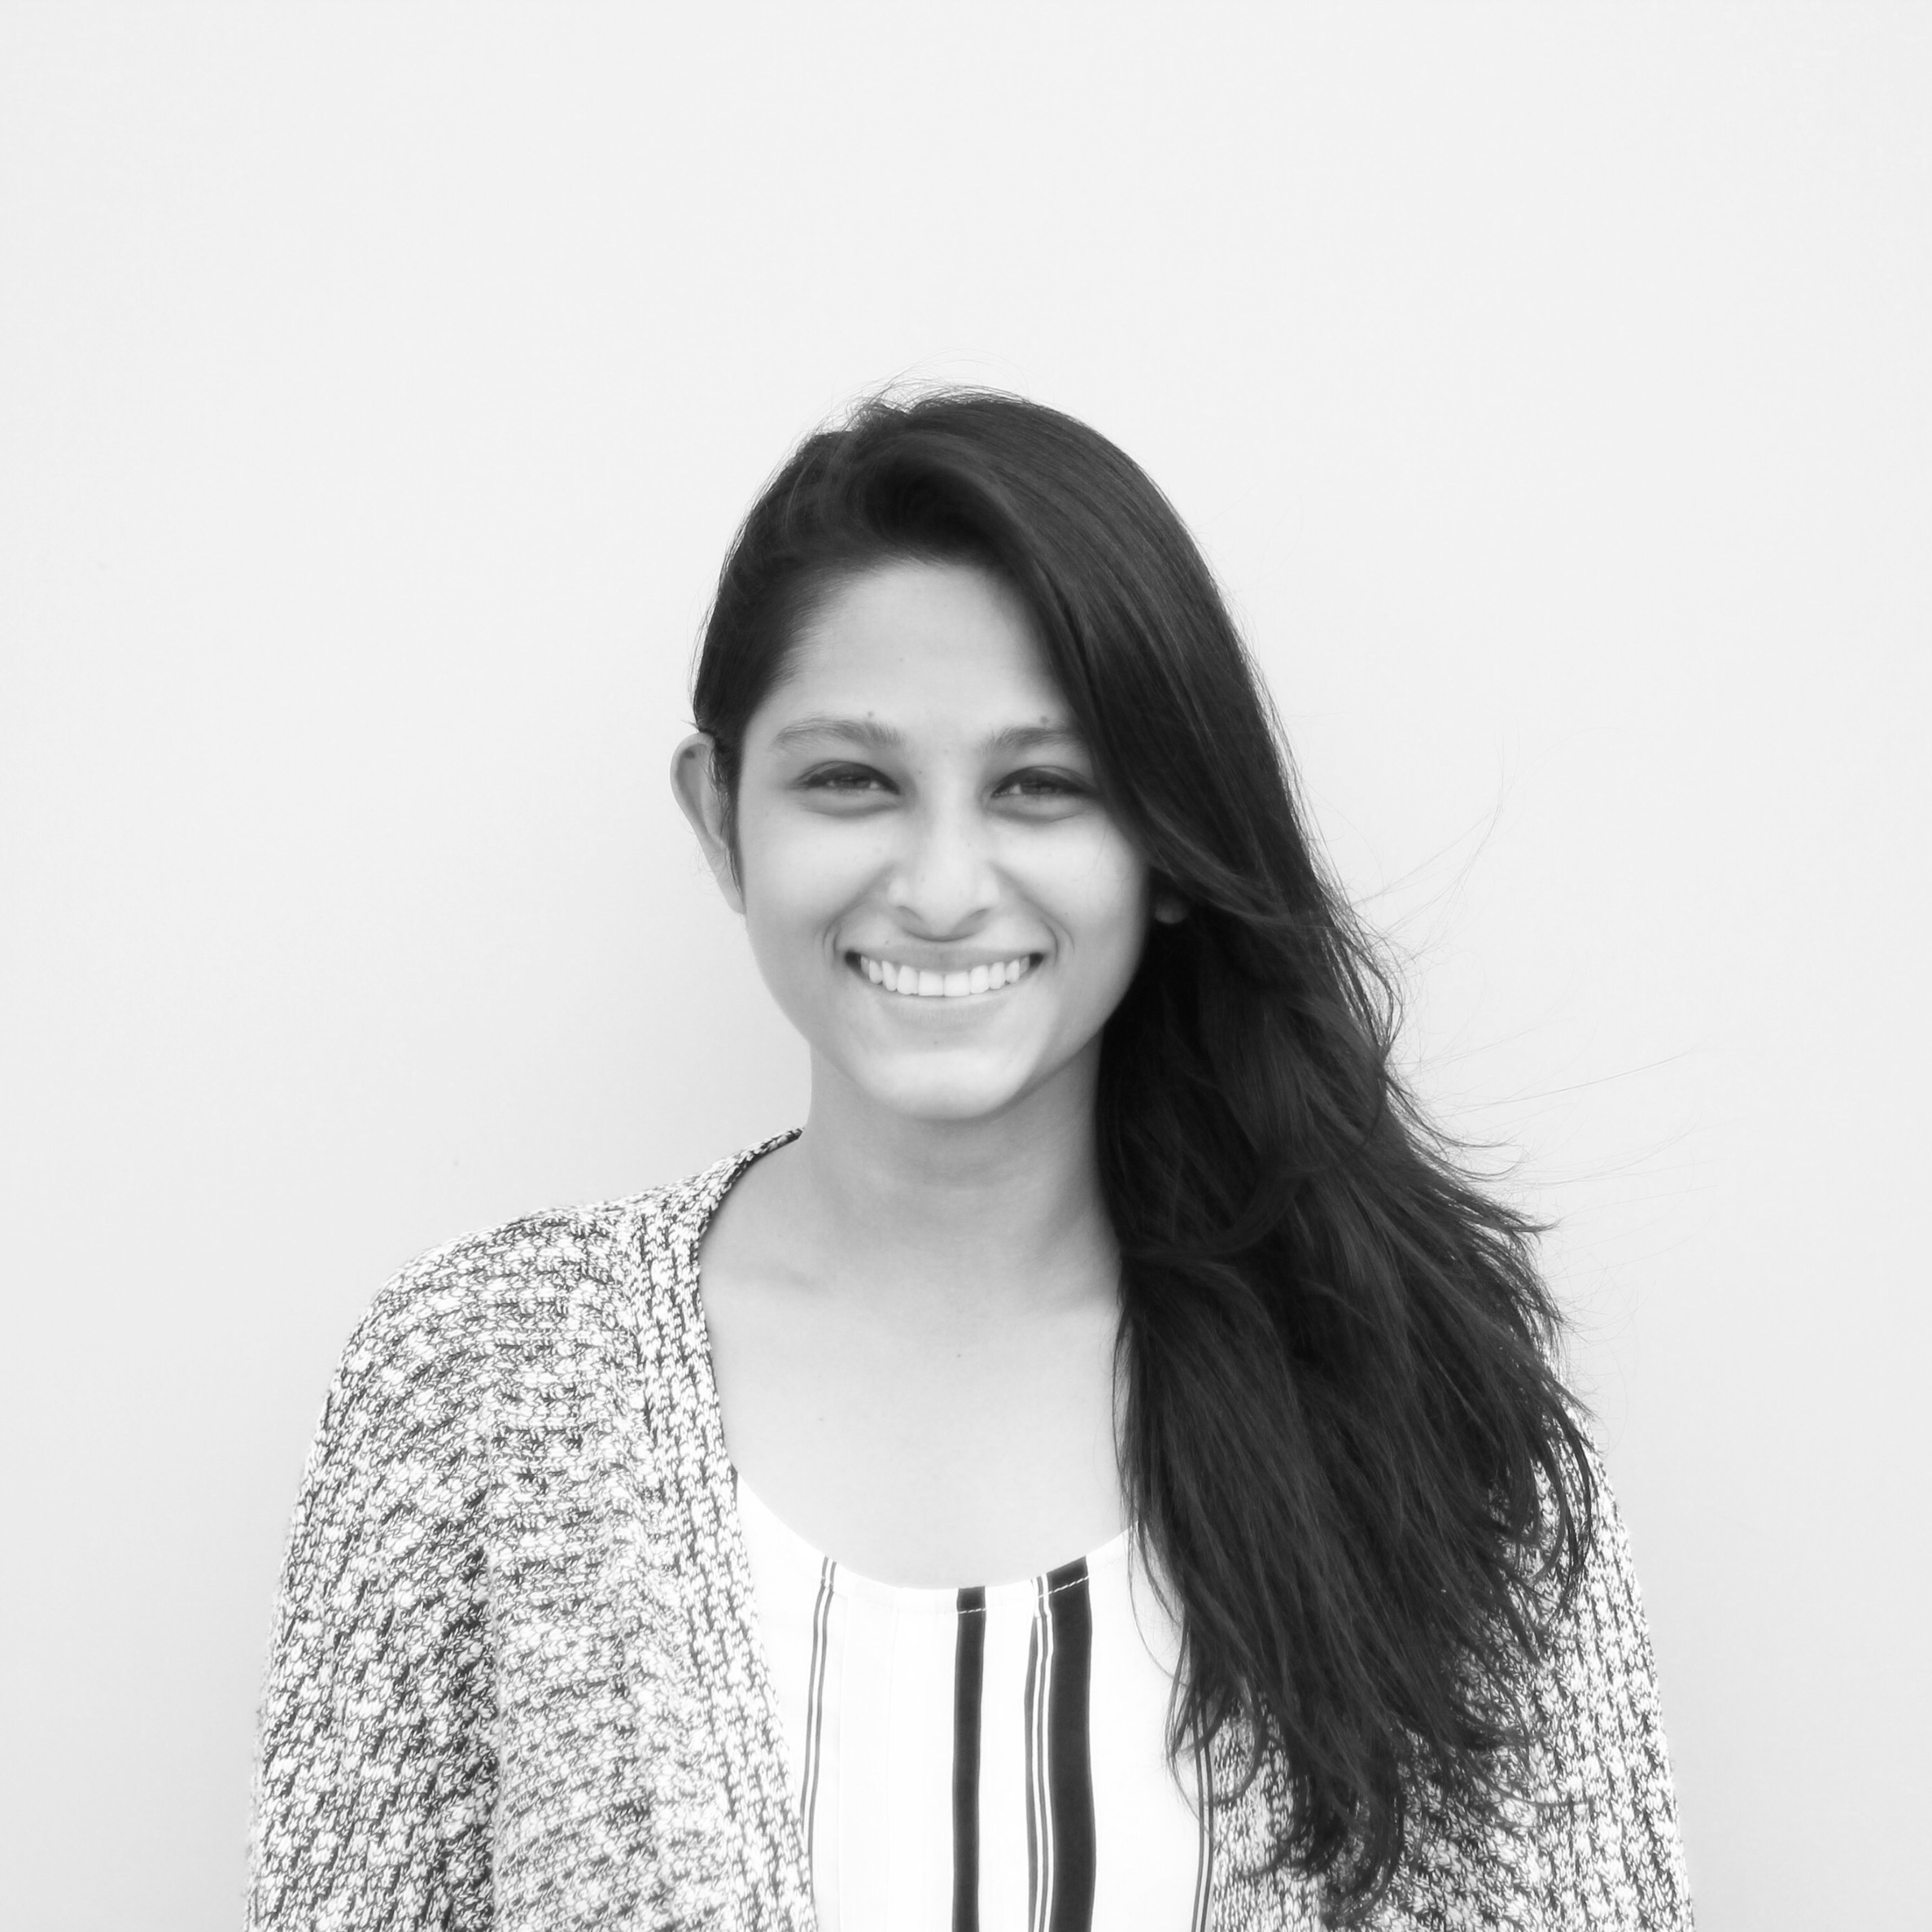 kriti agarwal - Passionate about translating ideas into ventures and exploring exciting market opportunities. Experienced in research, sensemaking, and go-to-market strategy and execution. Prolific swimmer and a health aficionado.LinkedInTwitter